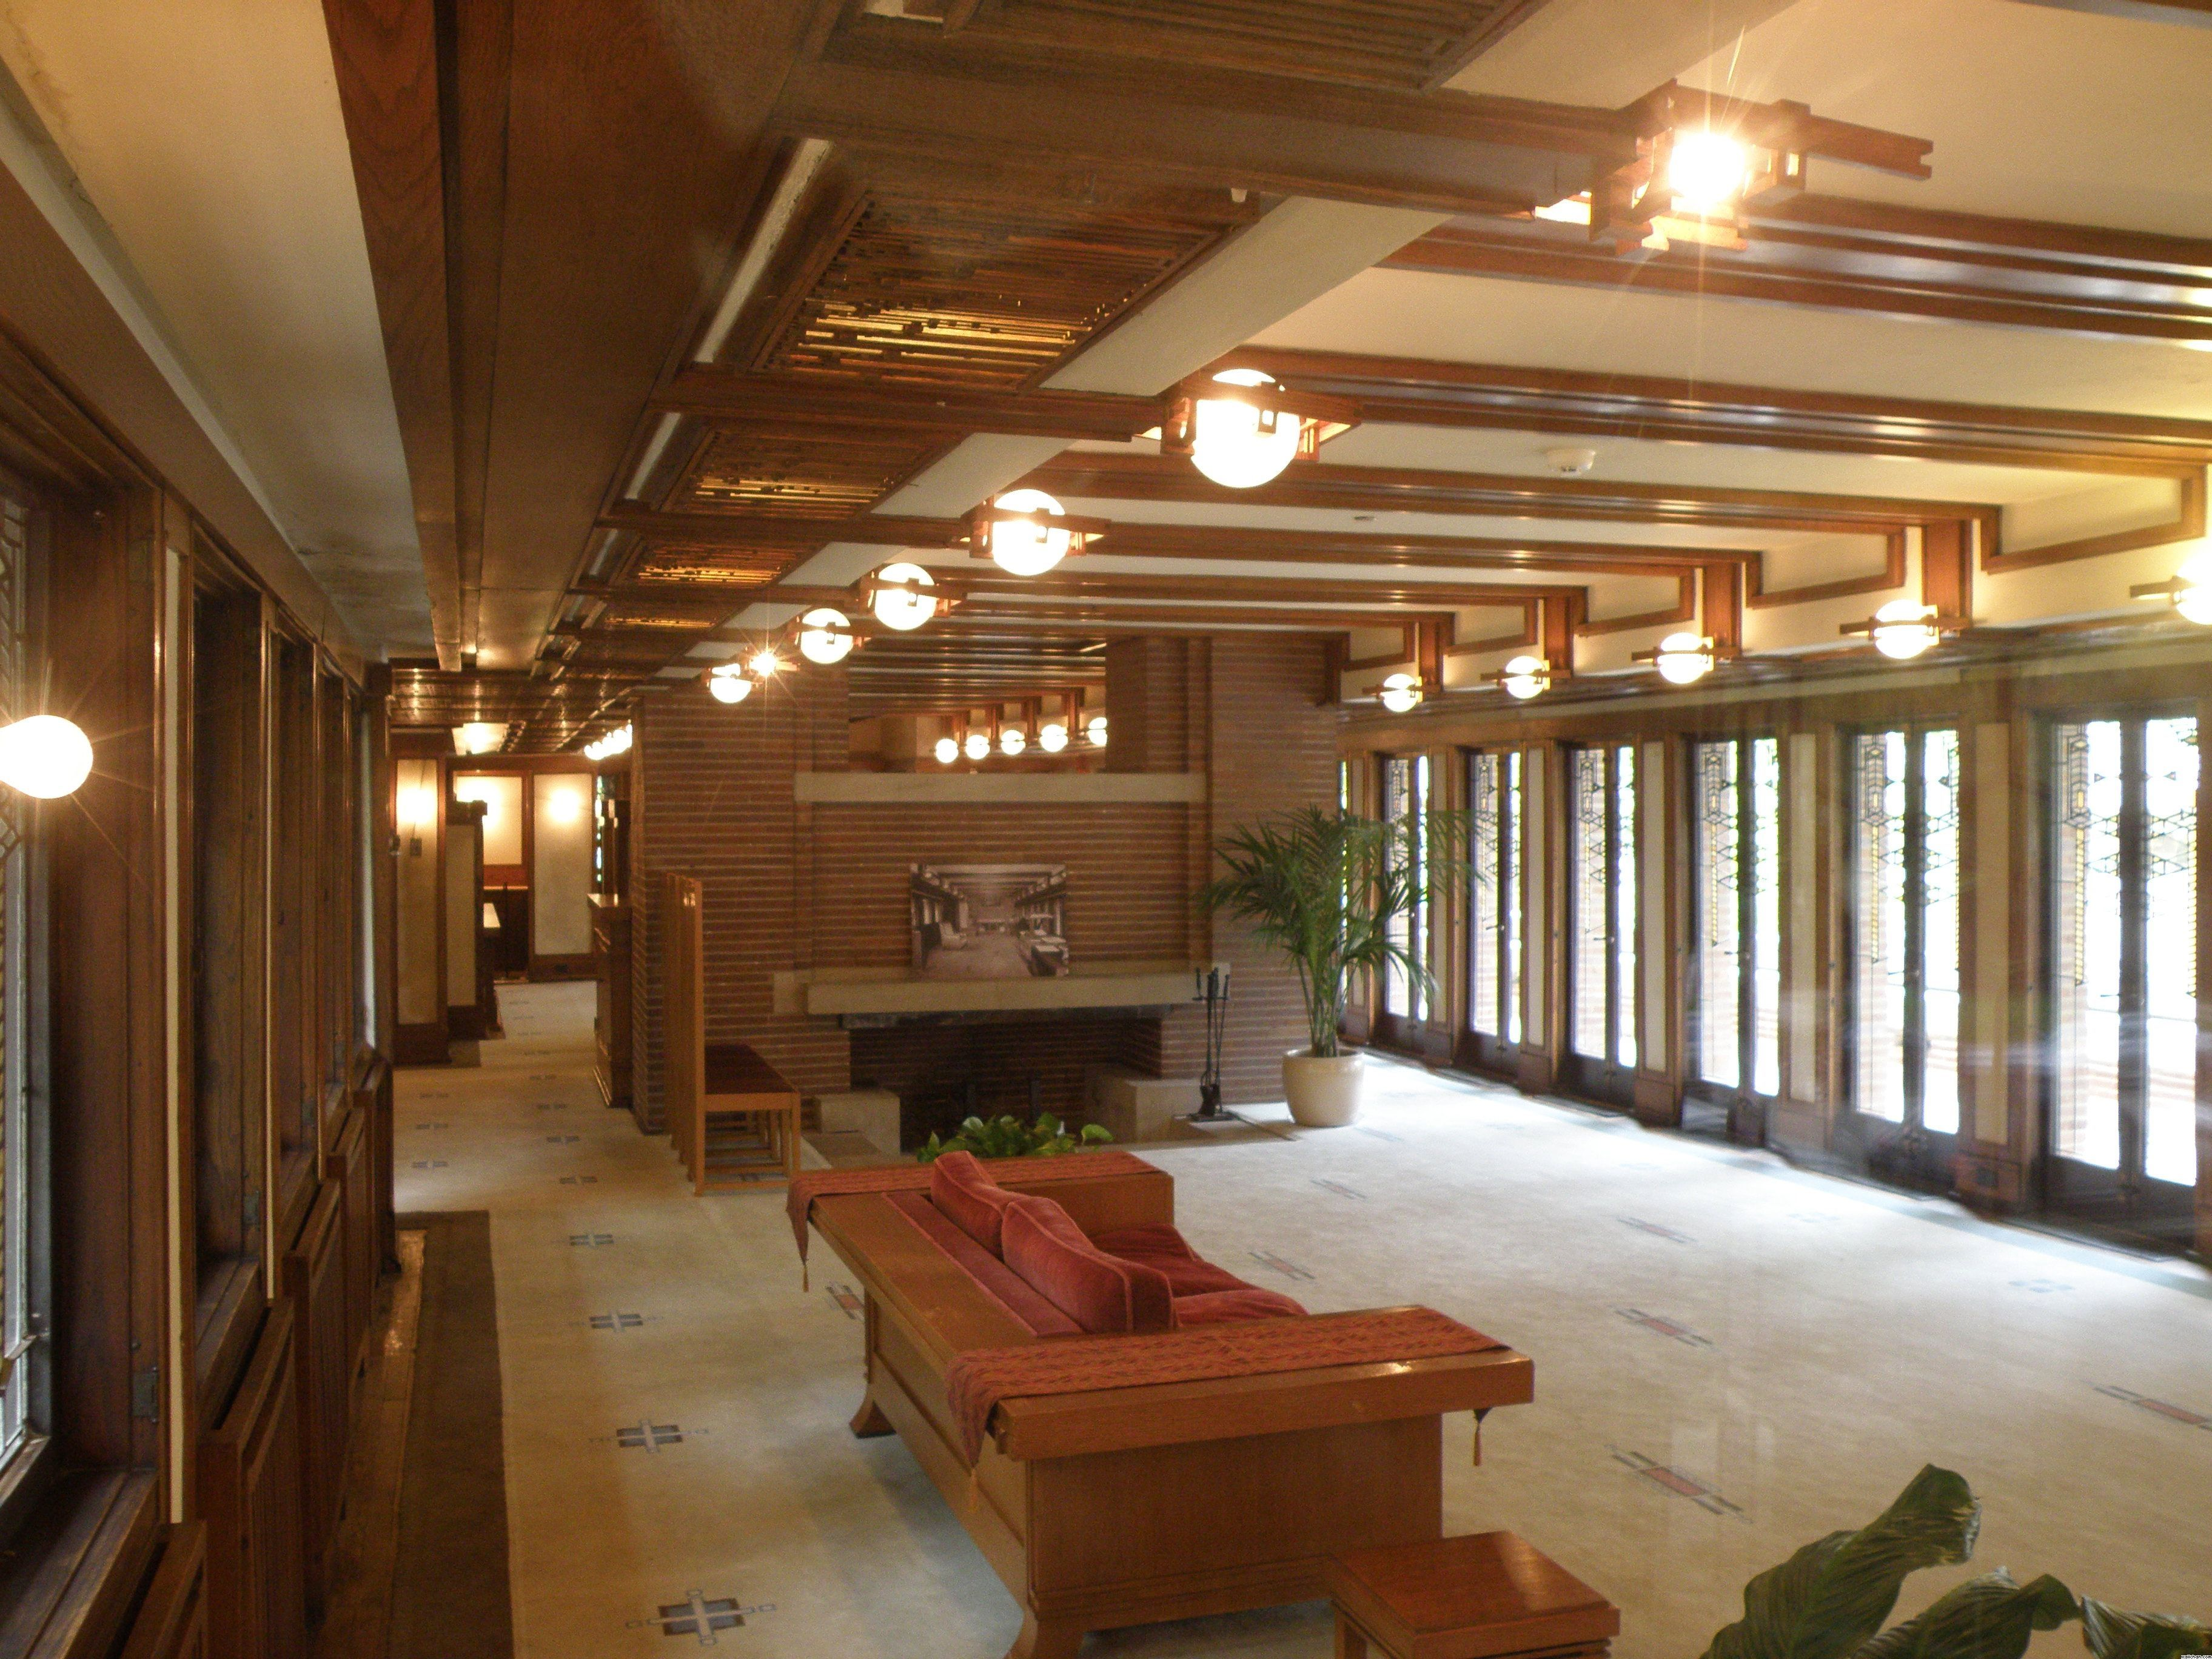 Robie house interior restoration project